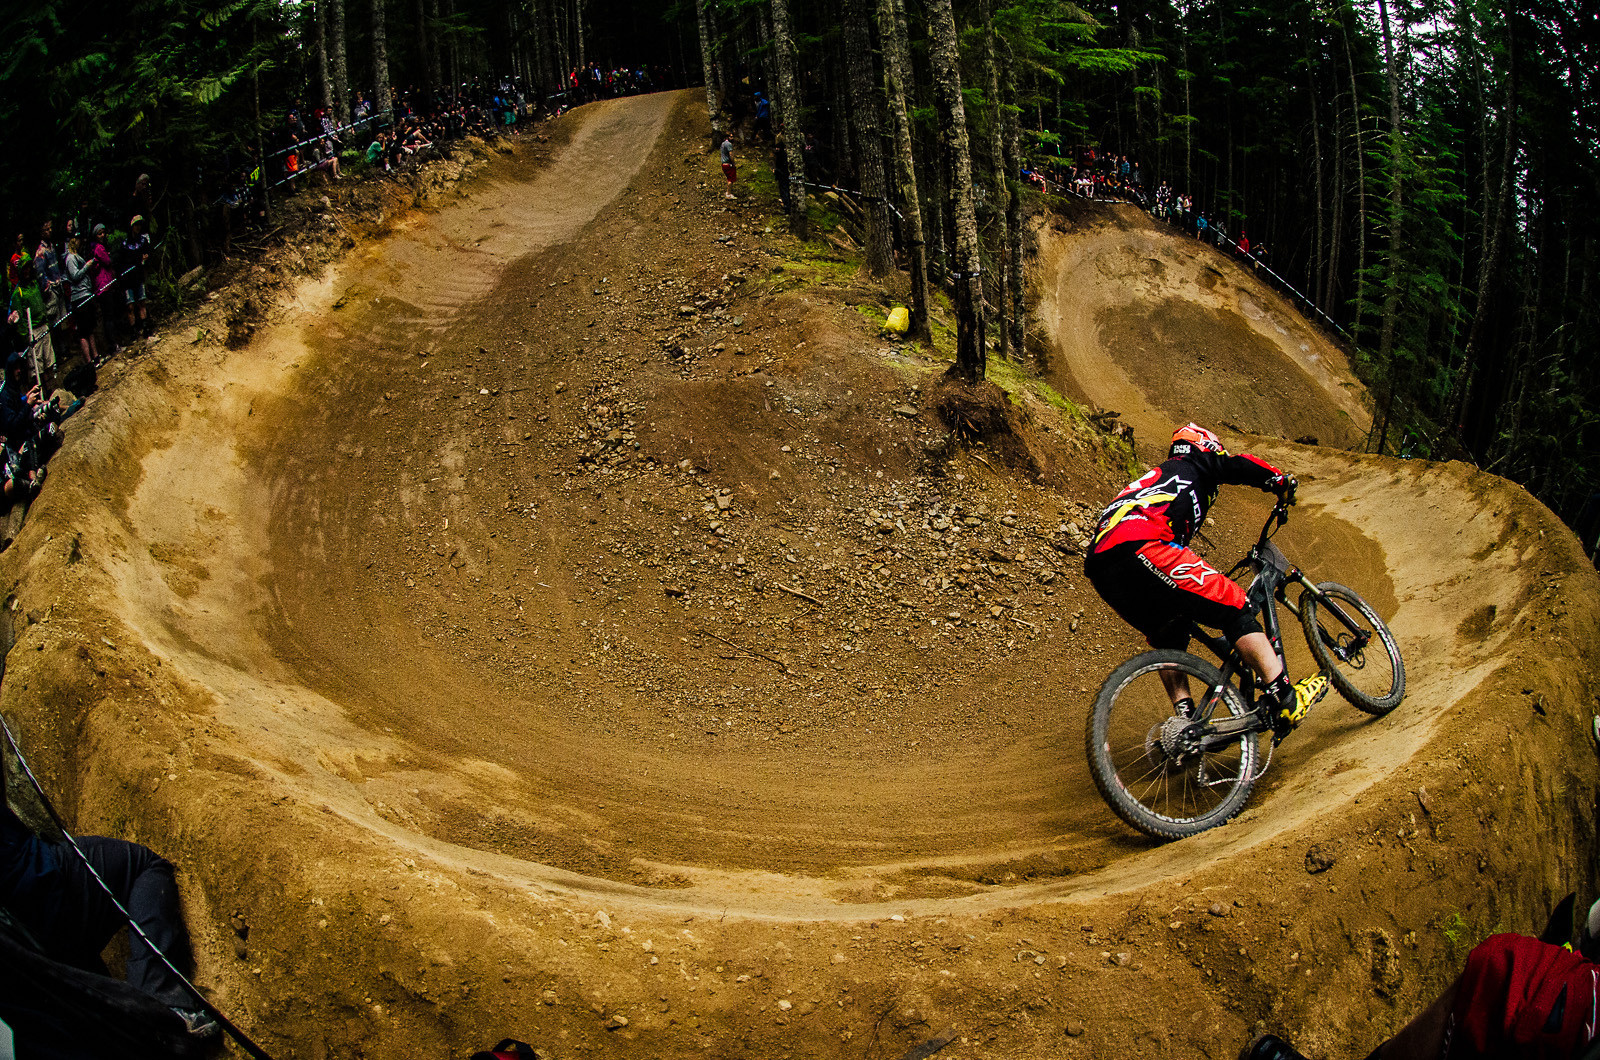 2014 Crankworx FOX Air DH - Berms, Berms, Berms - iceman2058 - Mountain Biking Pictures - Vital MTB